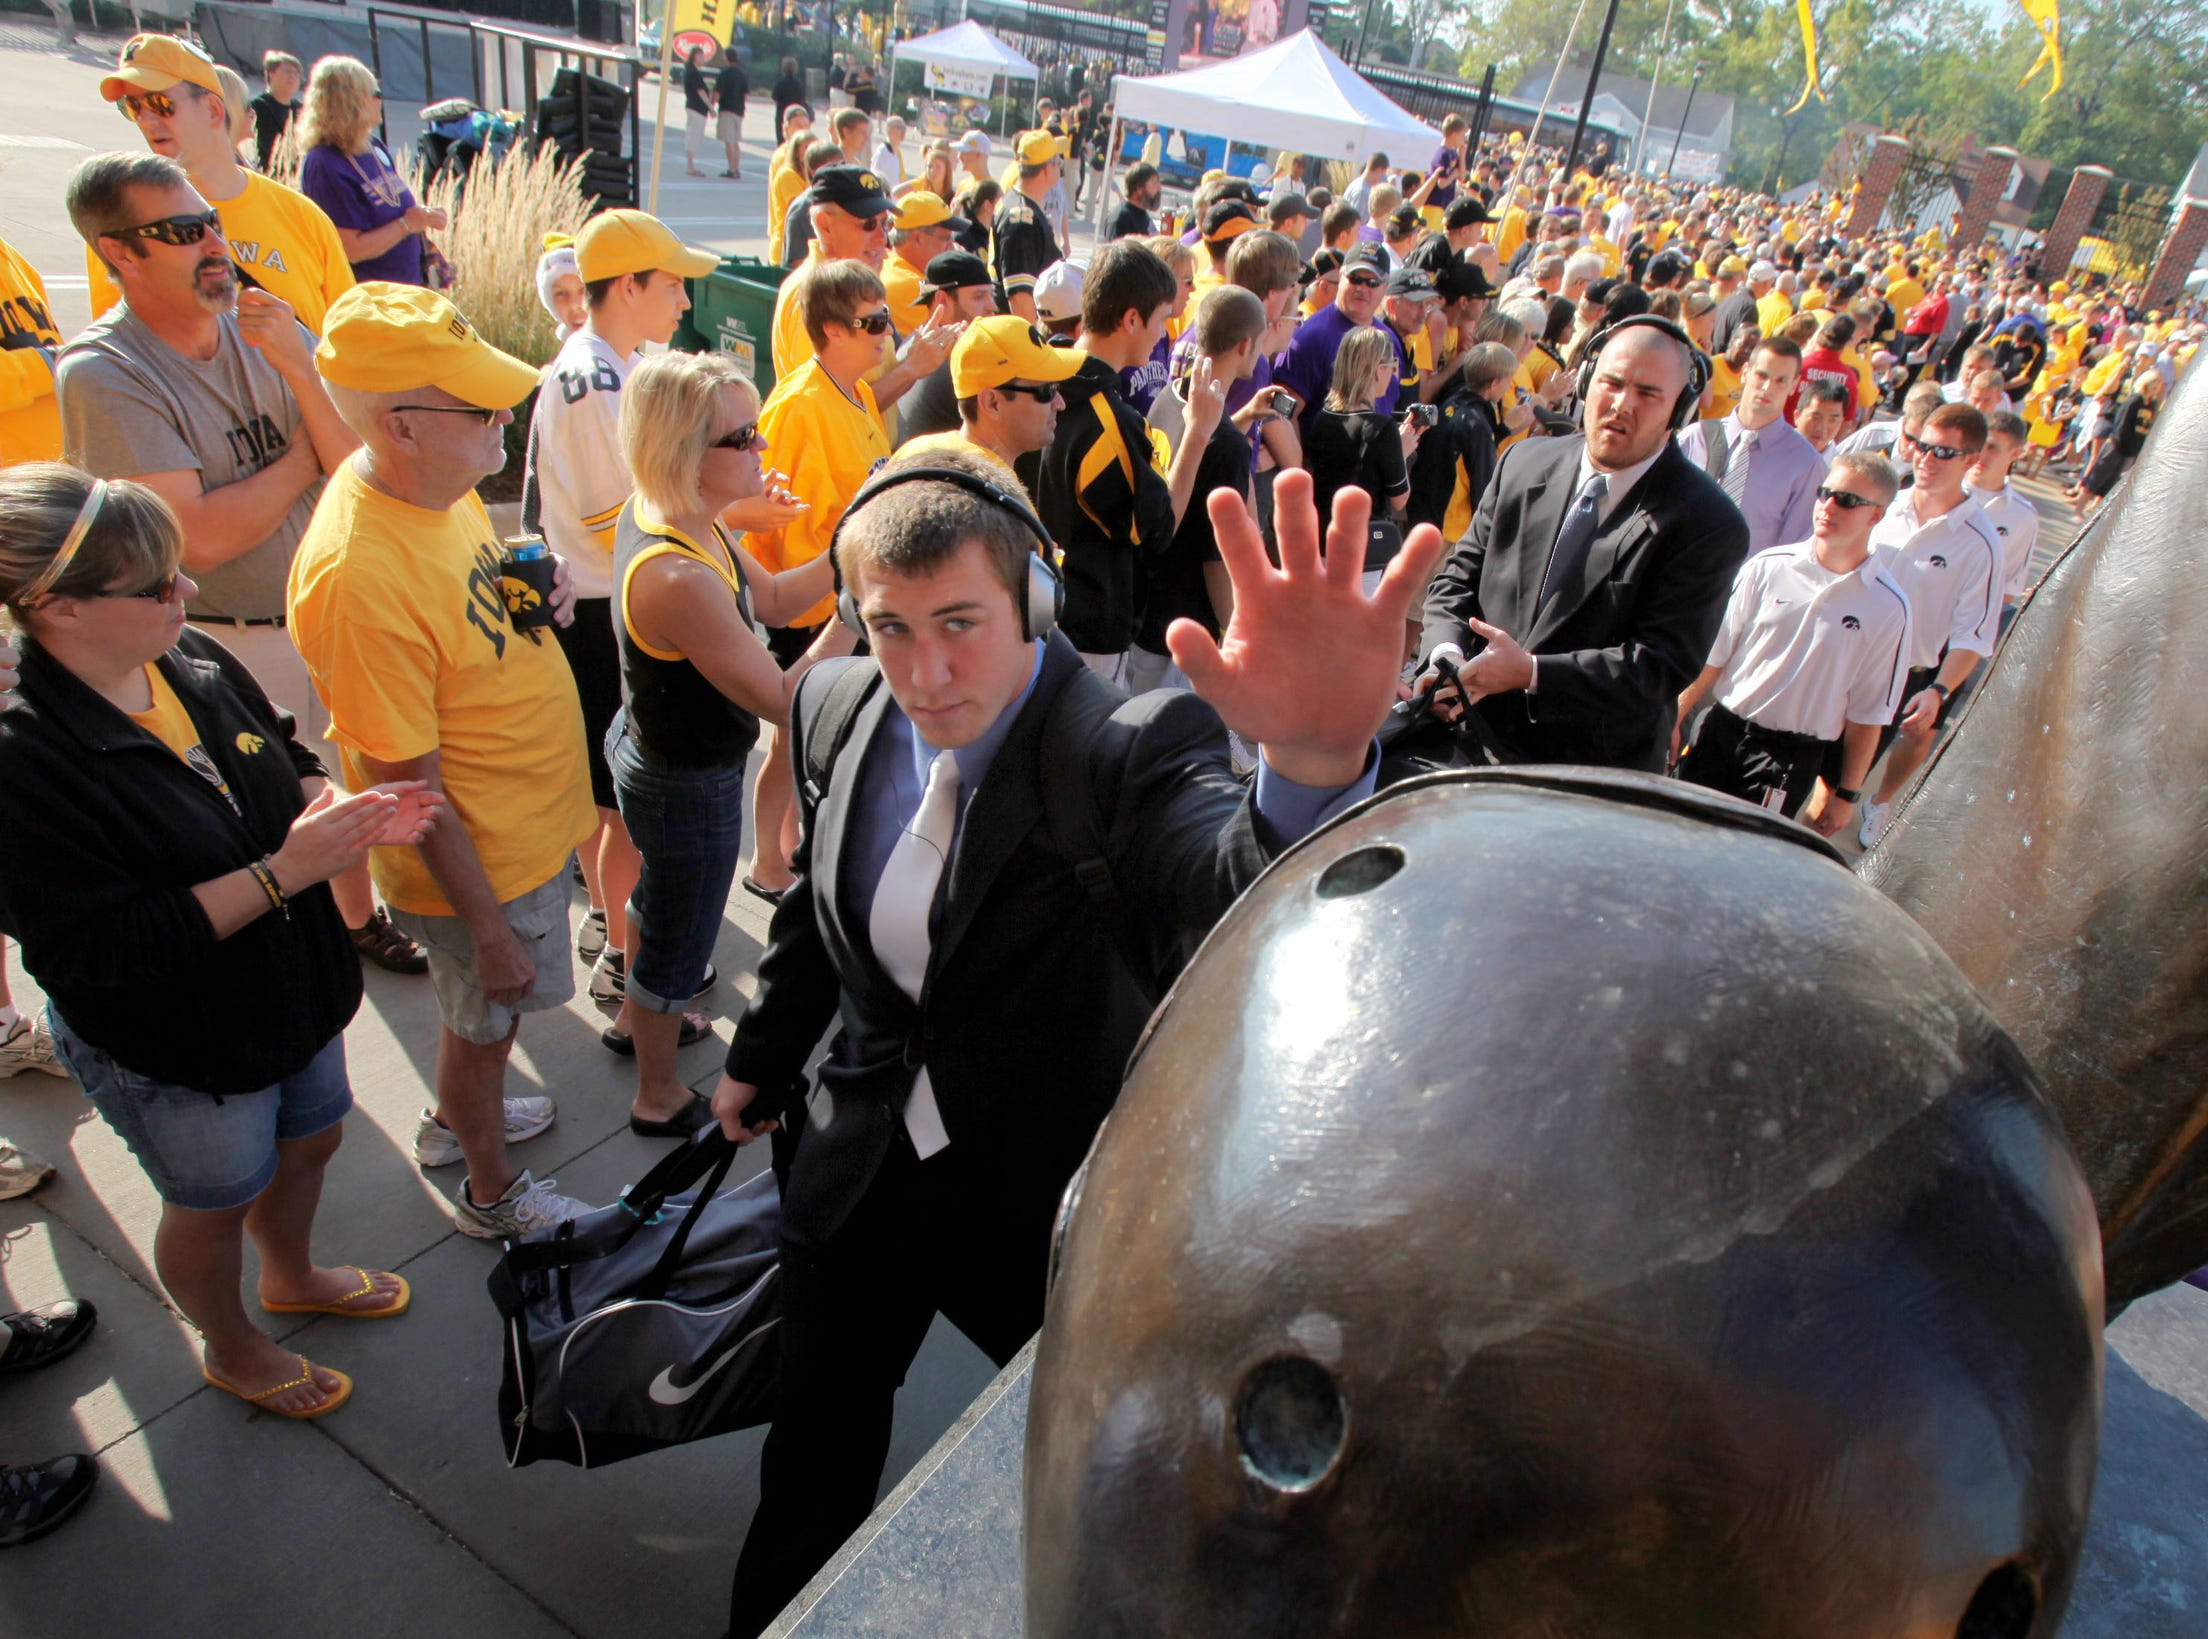 Iowa football players touch the helmet on the Nile Kinnick statue while entering Kinnick Stadium before Iowa's football season opener Sept. 5, 2009 against Northern Iowa in Iowa City.